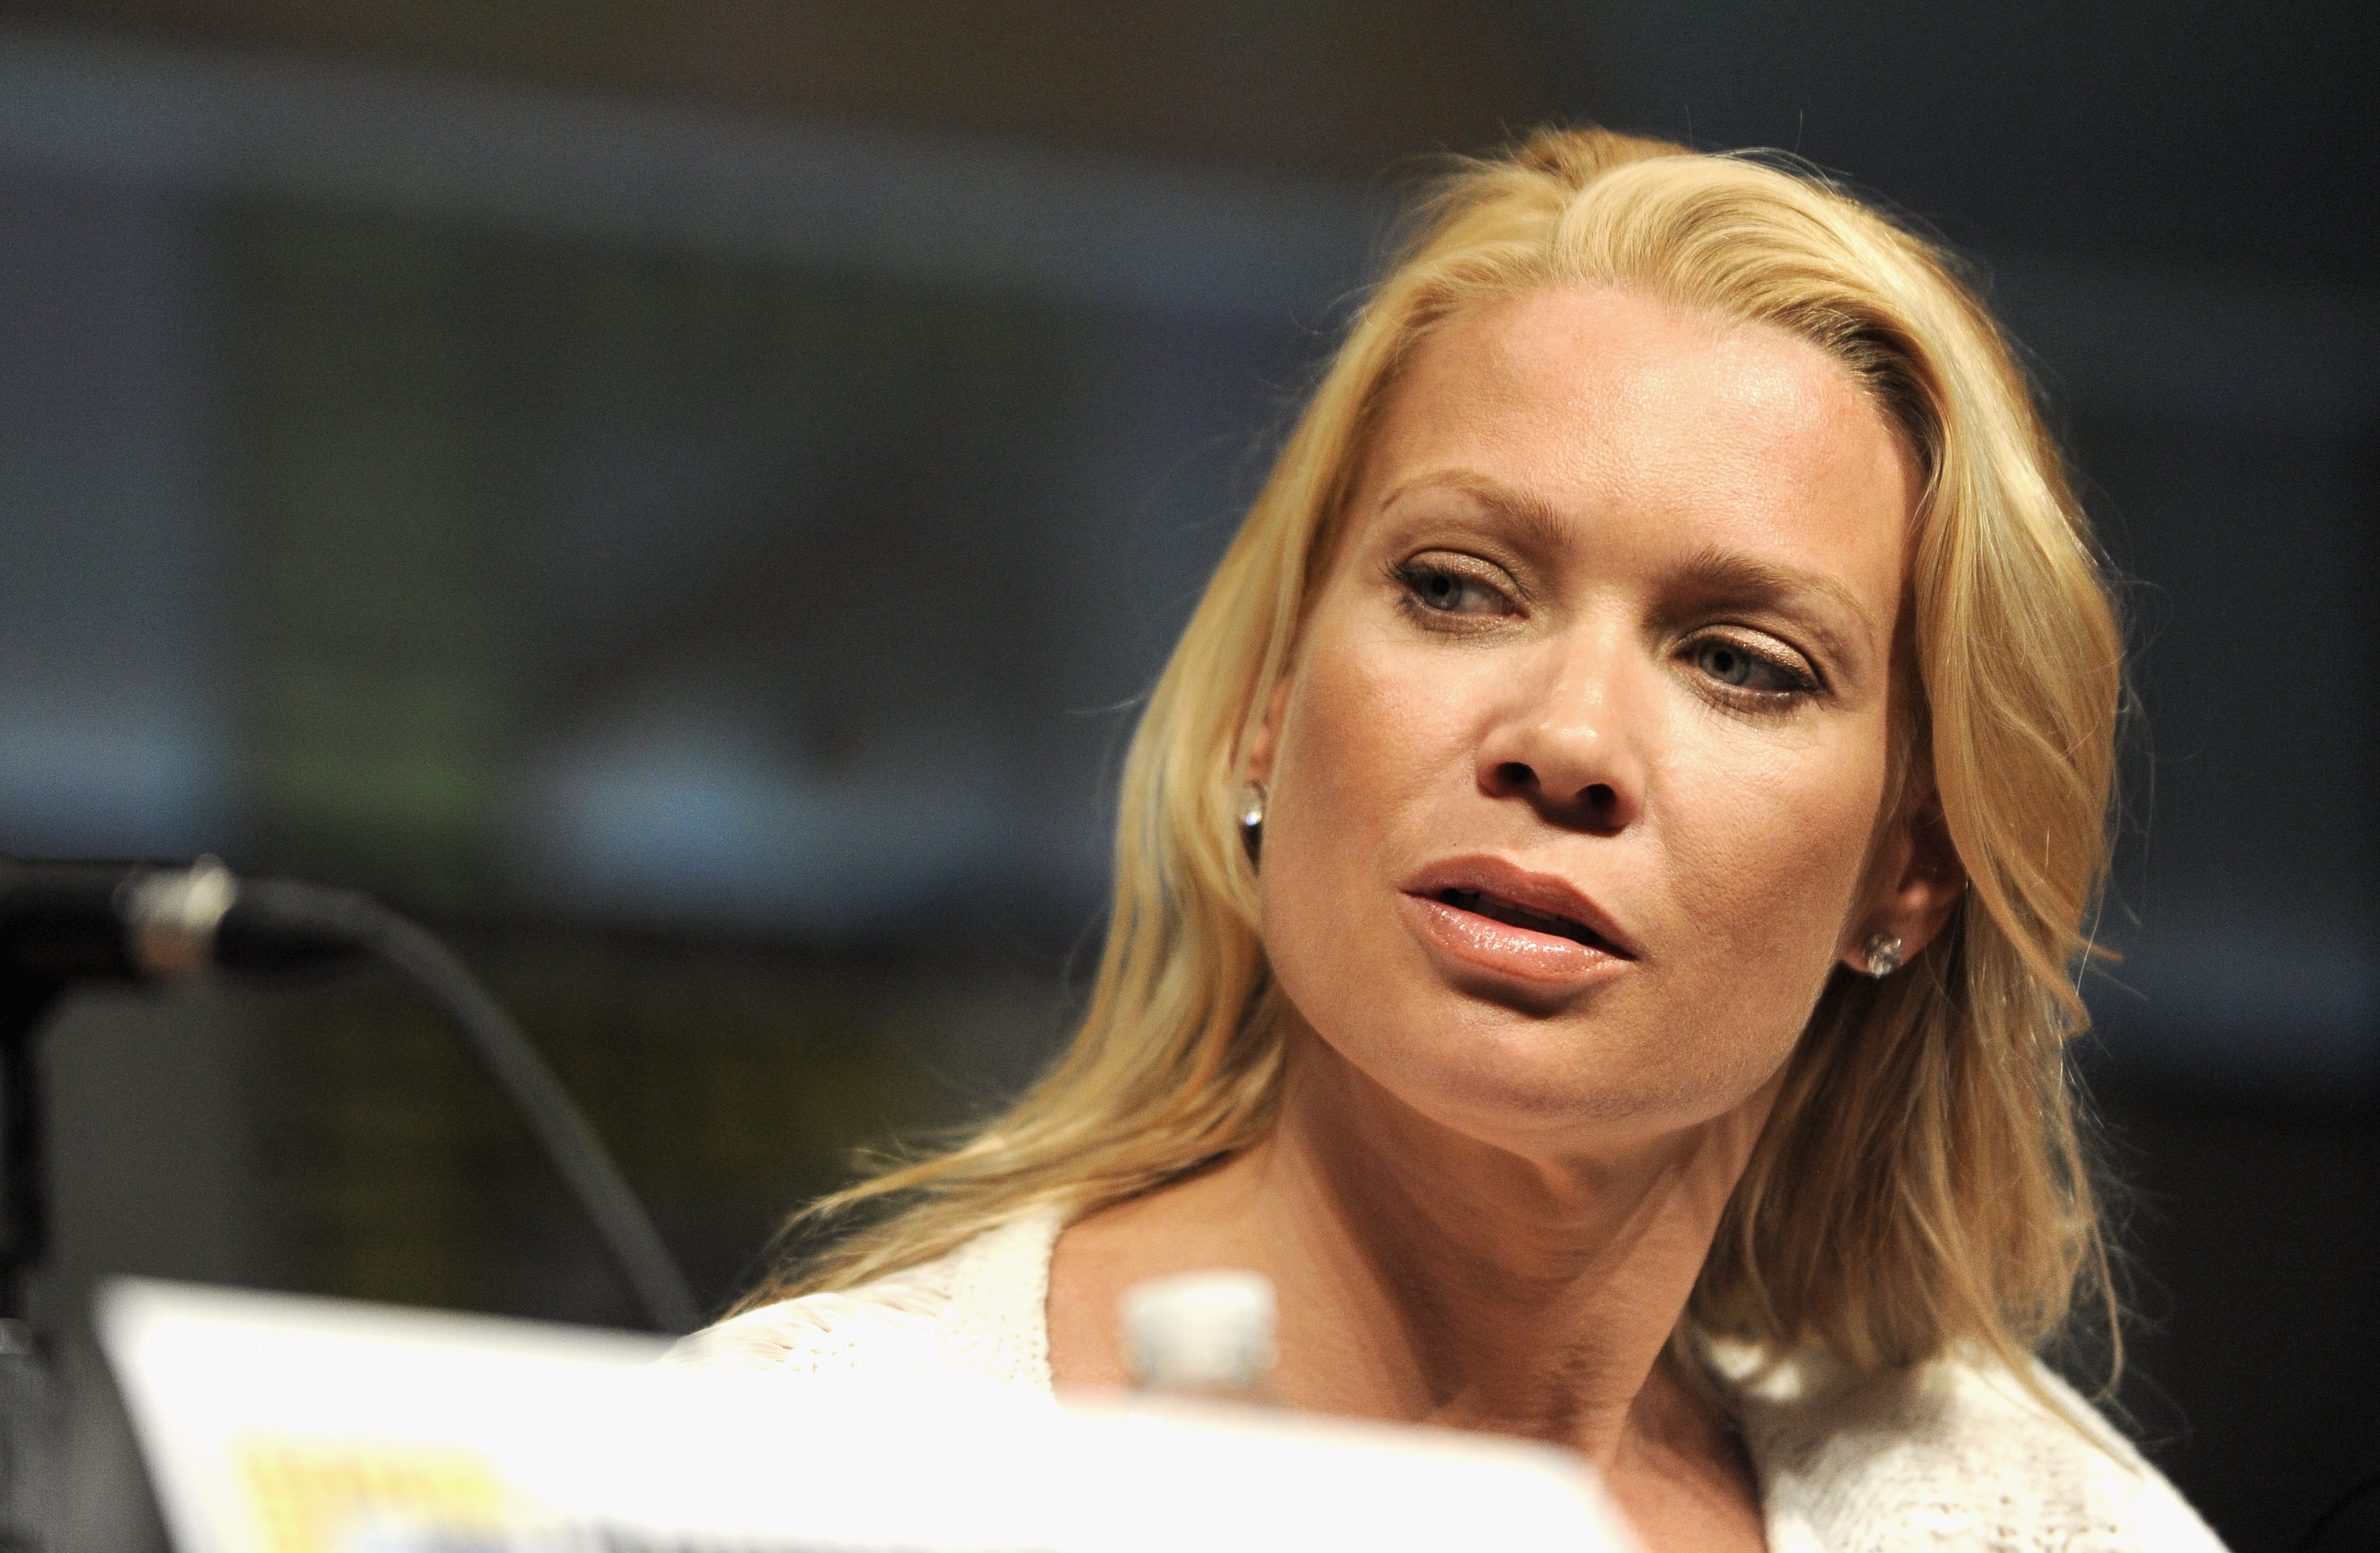 SAN DIEGO, CA - JULY 13:  Actress Laurie Holden  speaks at AMC's 'The Walking Dead' panel during Comic-Con International 2012